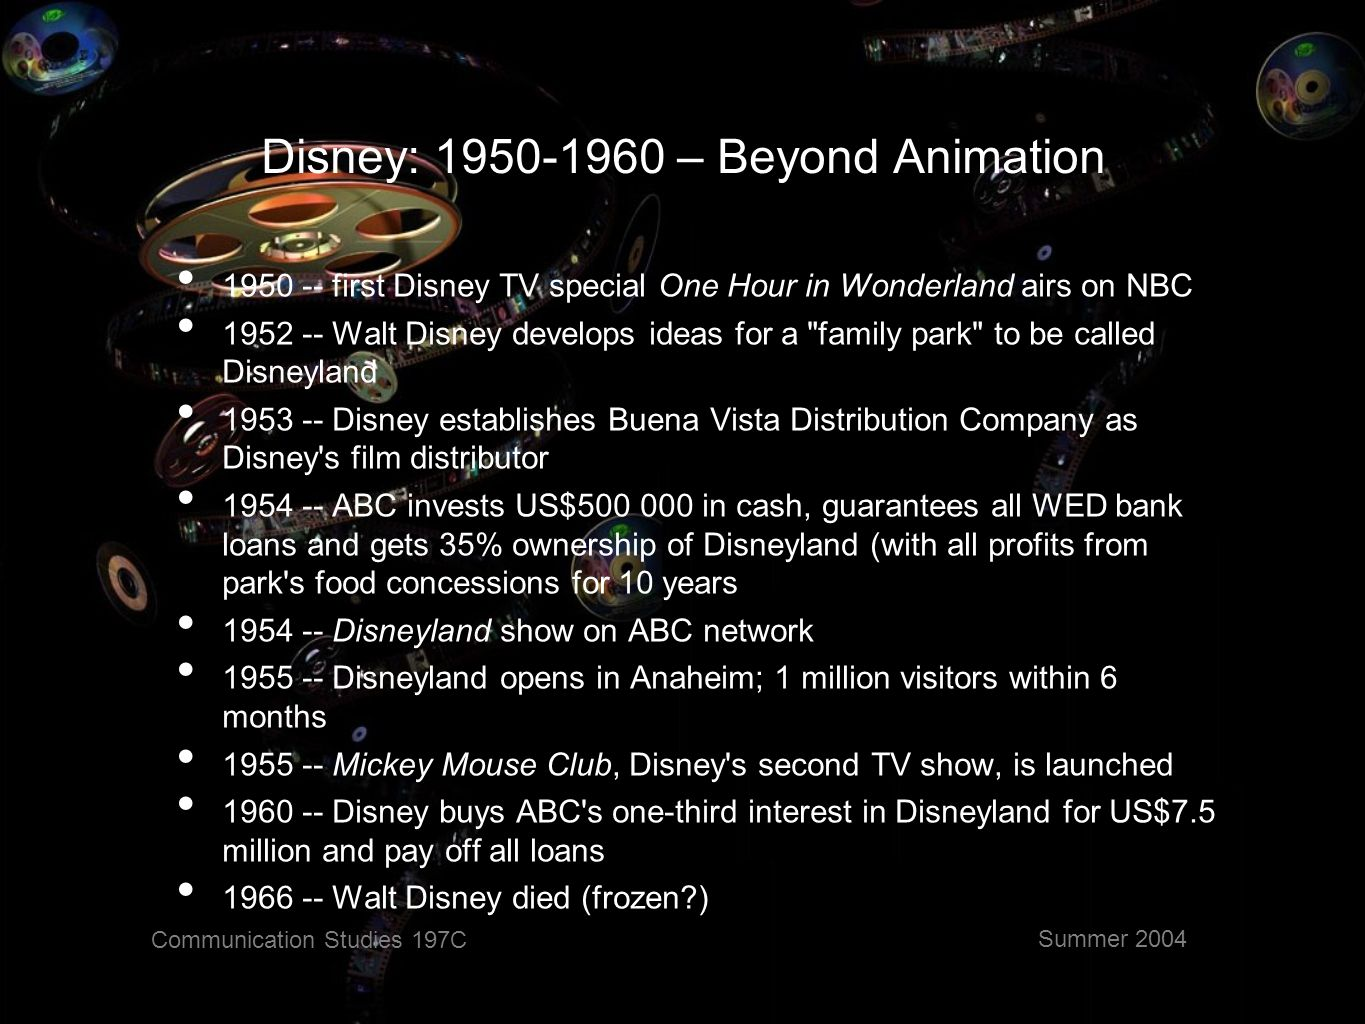 Communication Studies 197C Summer 2004 Disney: 1980-2004 – Further Expansions 1983 -- Disney Channel; Tokyo Disneyland – licensed 1984 -- Michael Eisner, from Paramount, became CEO of Disney after failed takeover bid for company by Bass Bros.; First Touchstone release 1986 -- Capital Cities Communications buys ABC network for US$3.5 billion to create Capital Cities-ABC 1987 -- first Disney Store opens 1990 -- first Hollywood Pictures release 1992 -- Disneyland Paris opens 1993 -- buys Miramax for US$80m